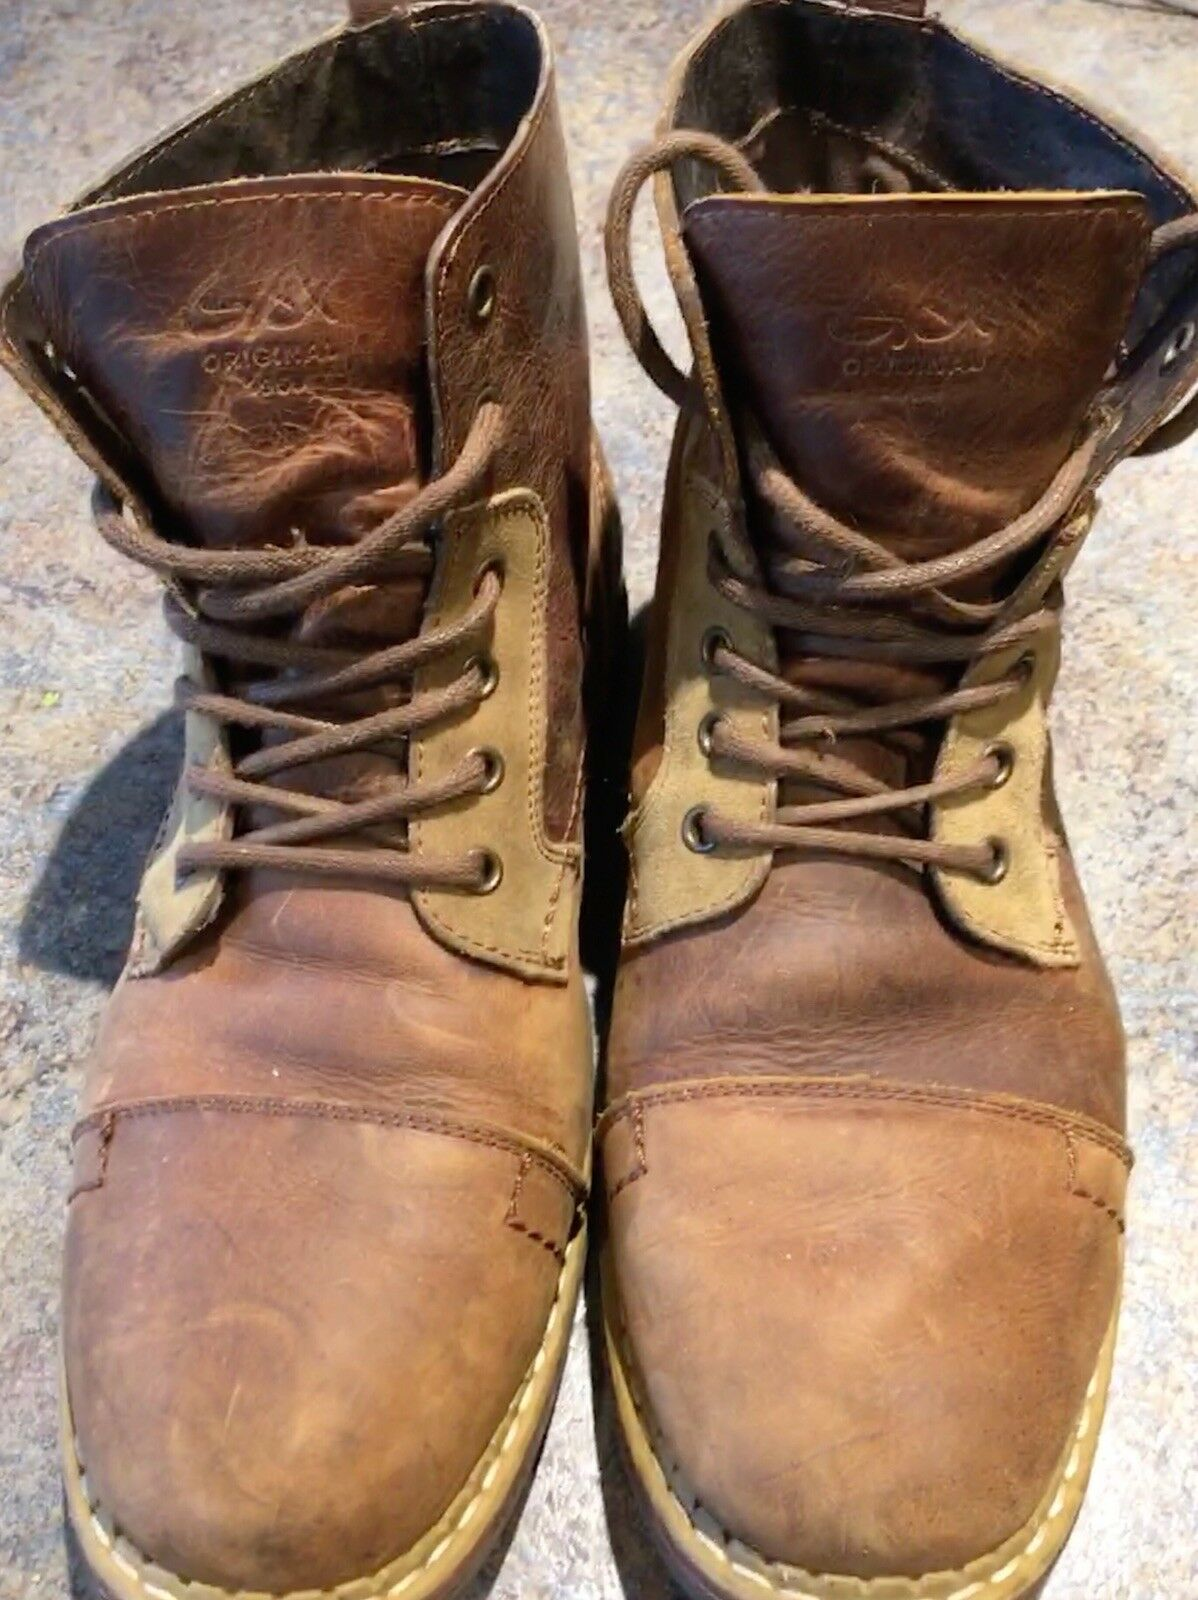 geox leather boots men 10